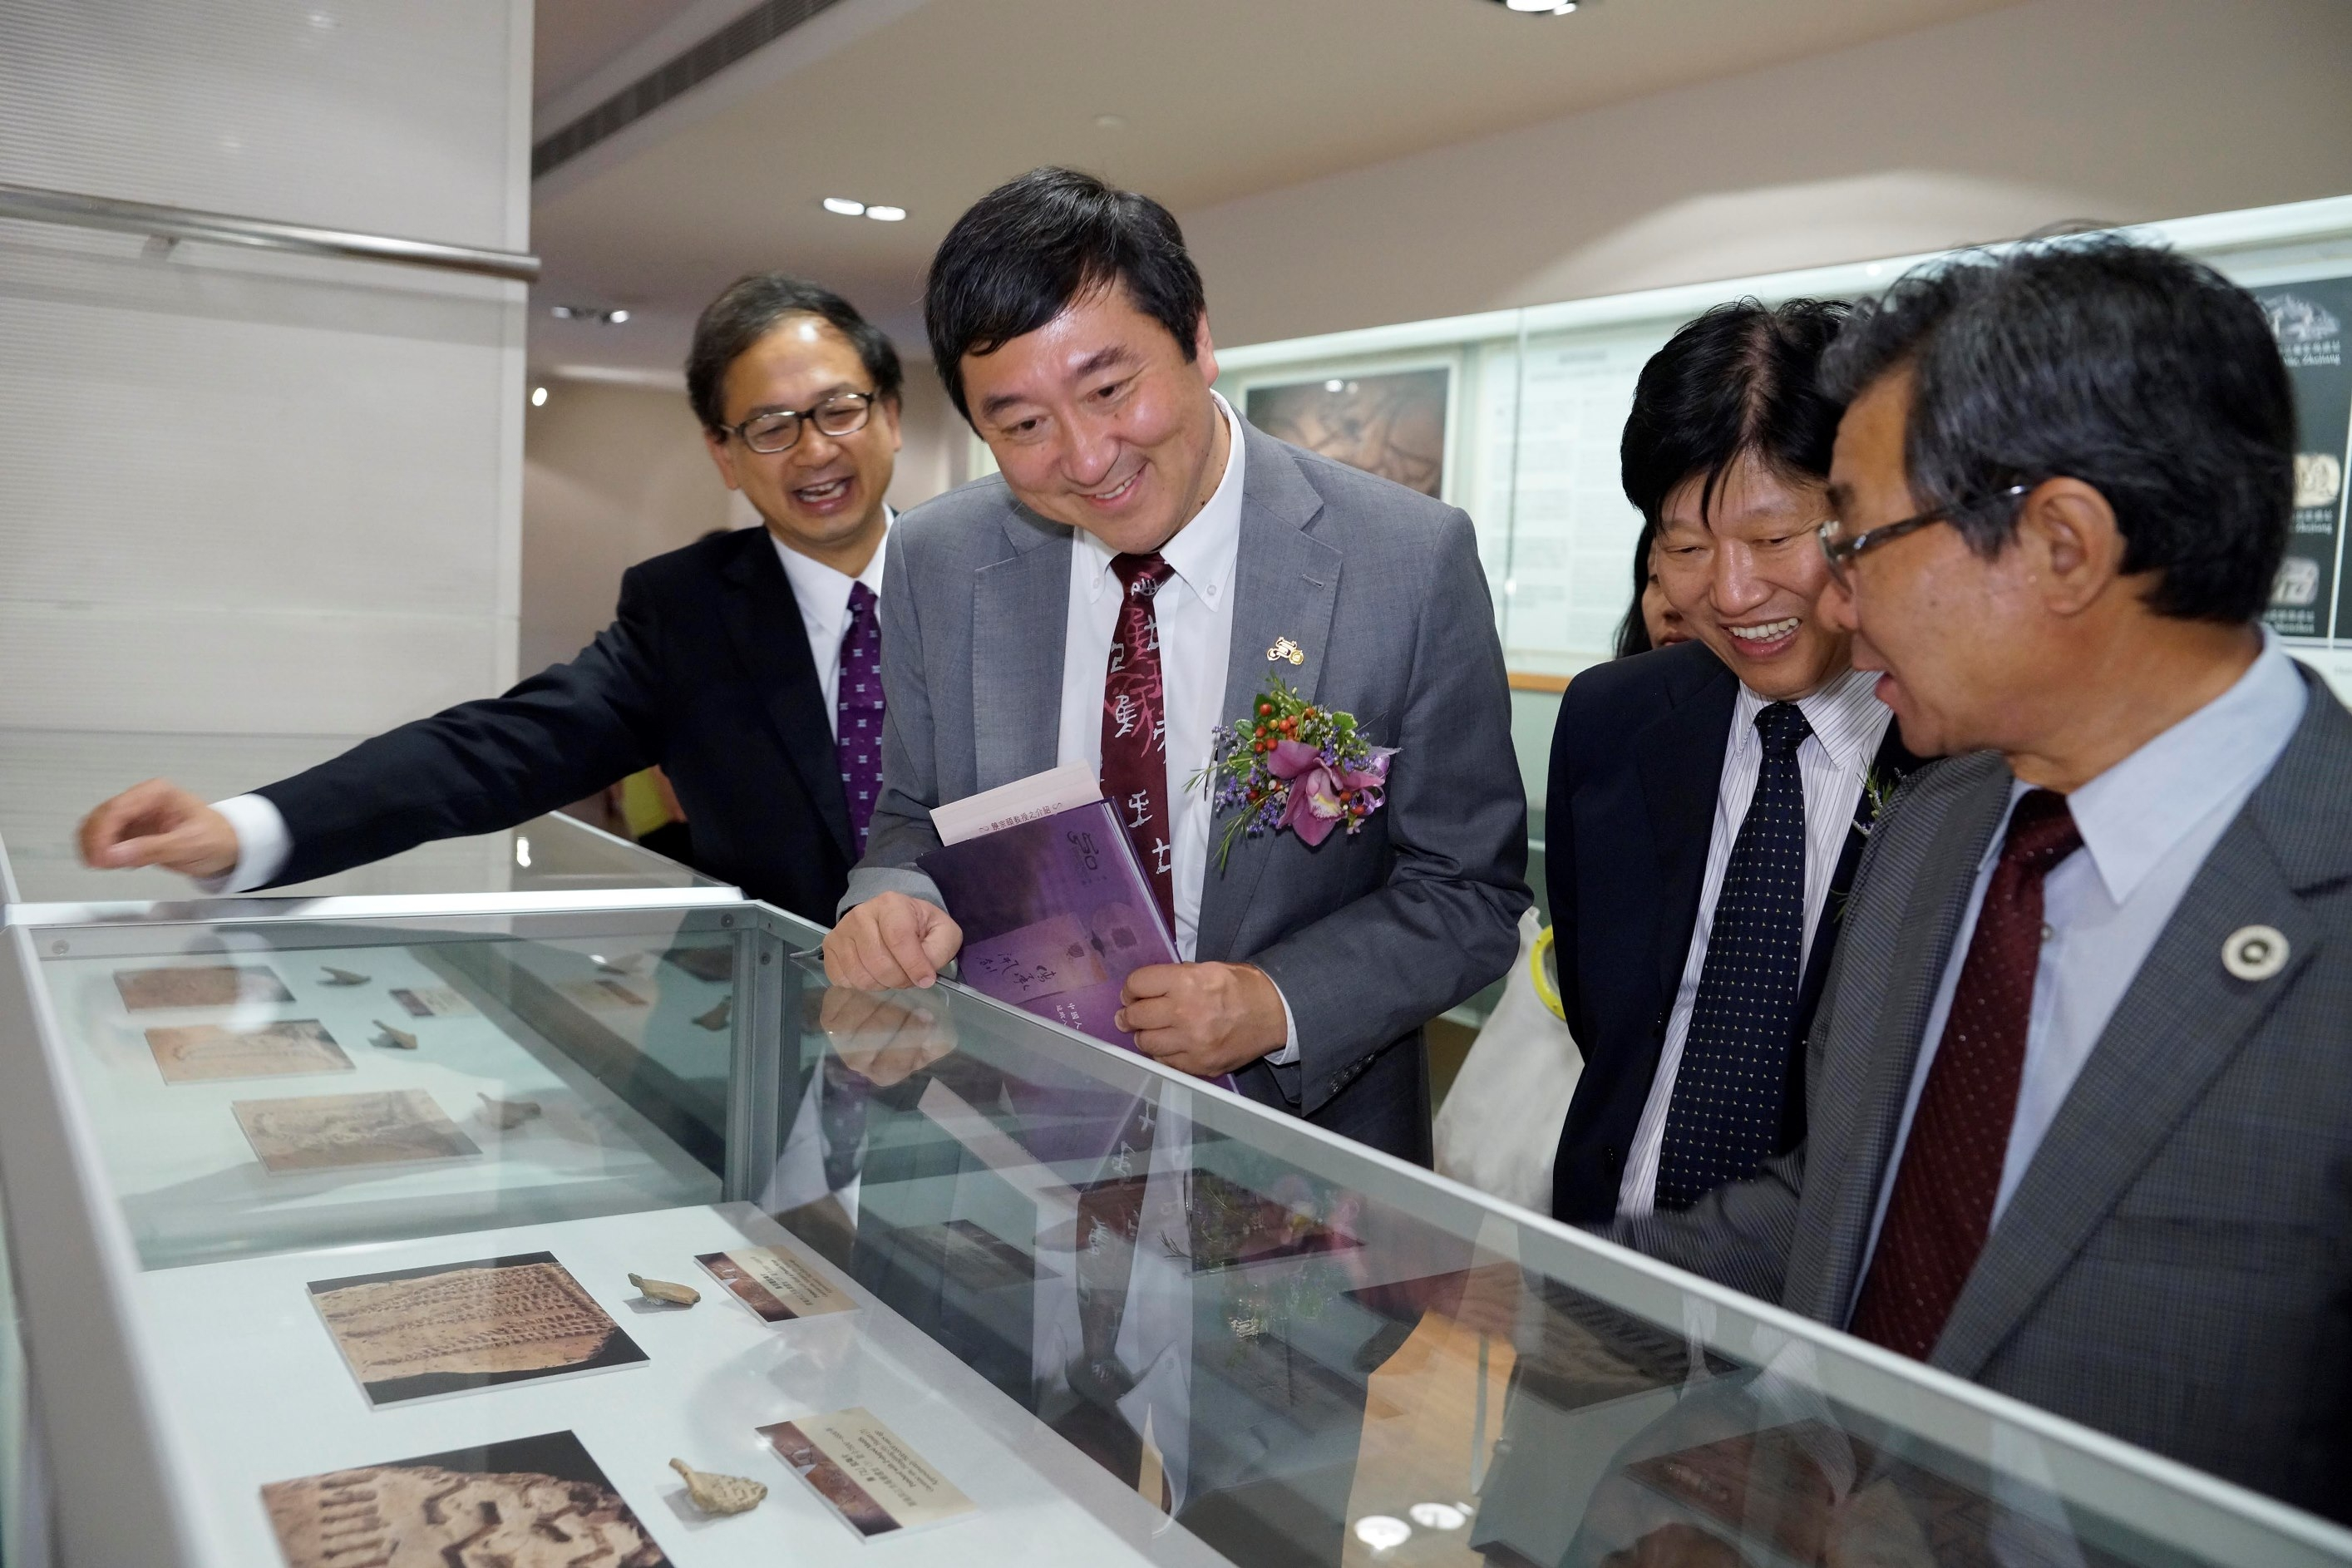 (From left) Prof. Tang Chung, Prof. Joseph Sung, Mr. He Gang and Prof. Bai Yunxiang viewing the artefacts together.